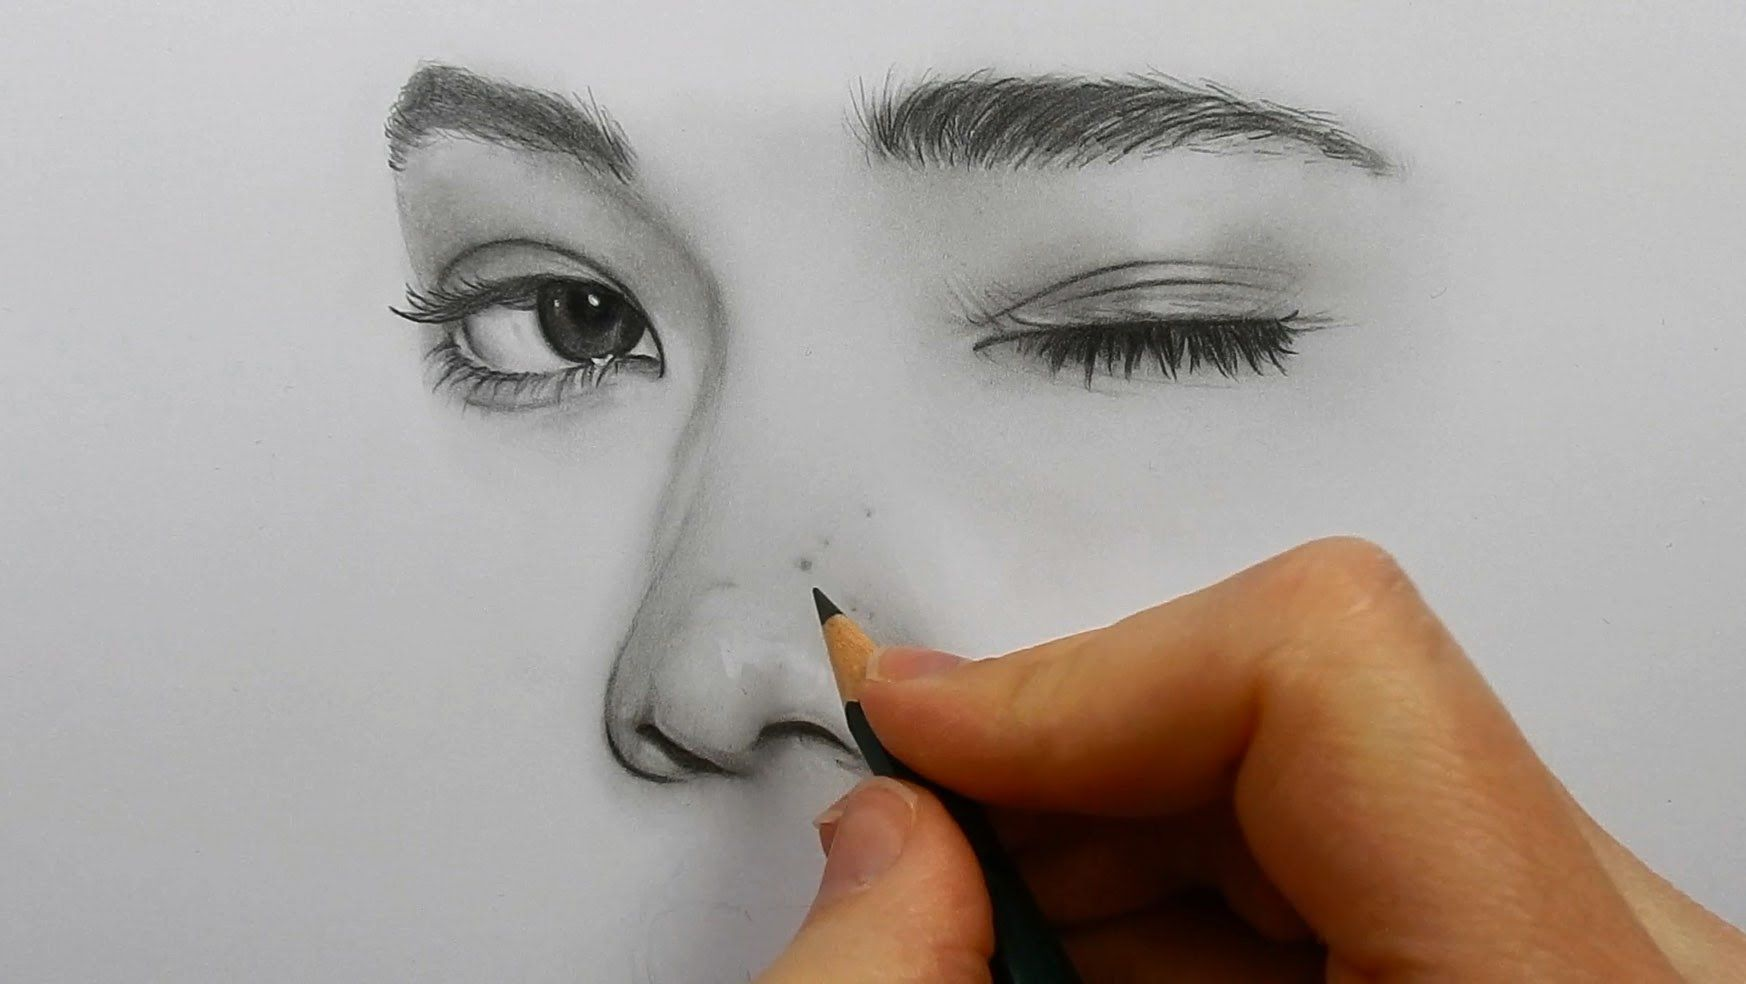 eyebrow shading drawing. drawing shading and blending a face with graphite pencils - faber-castell eyebrow h